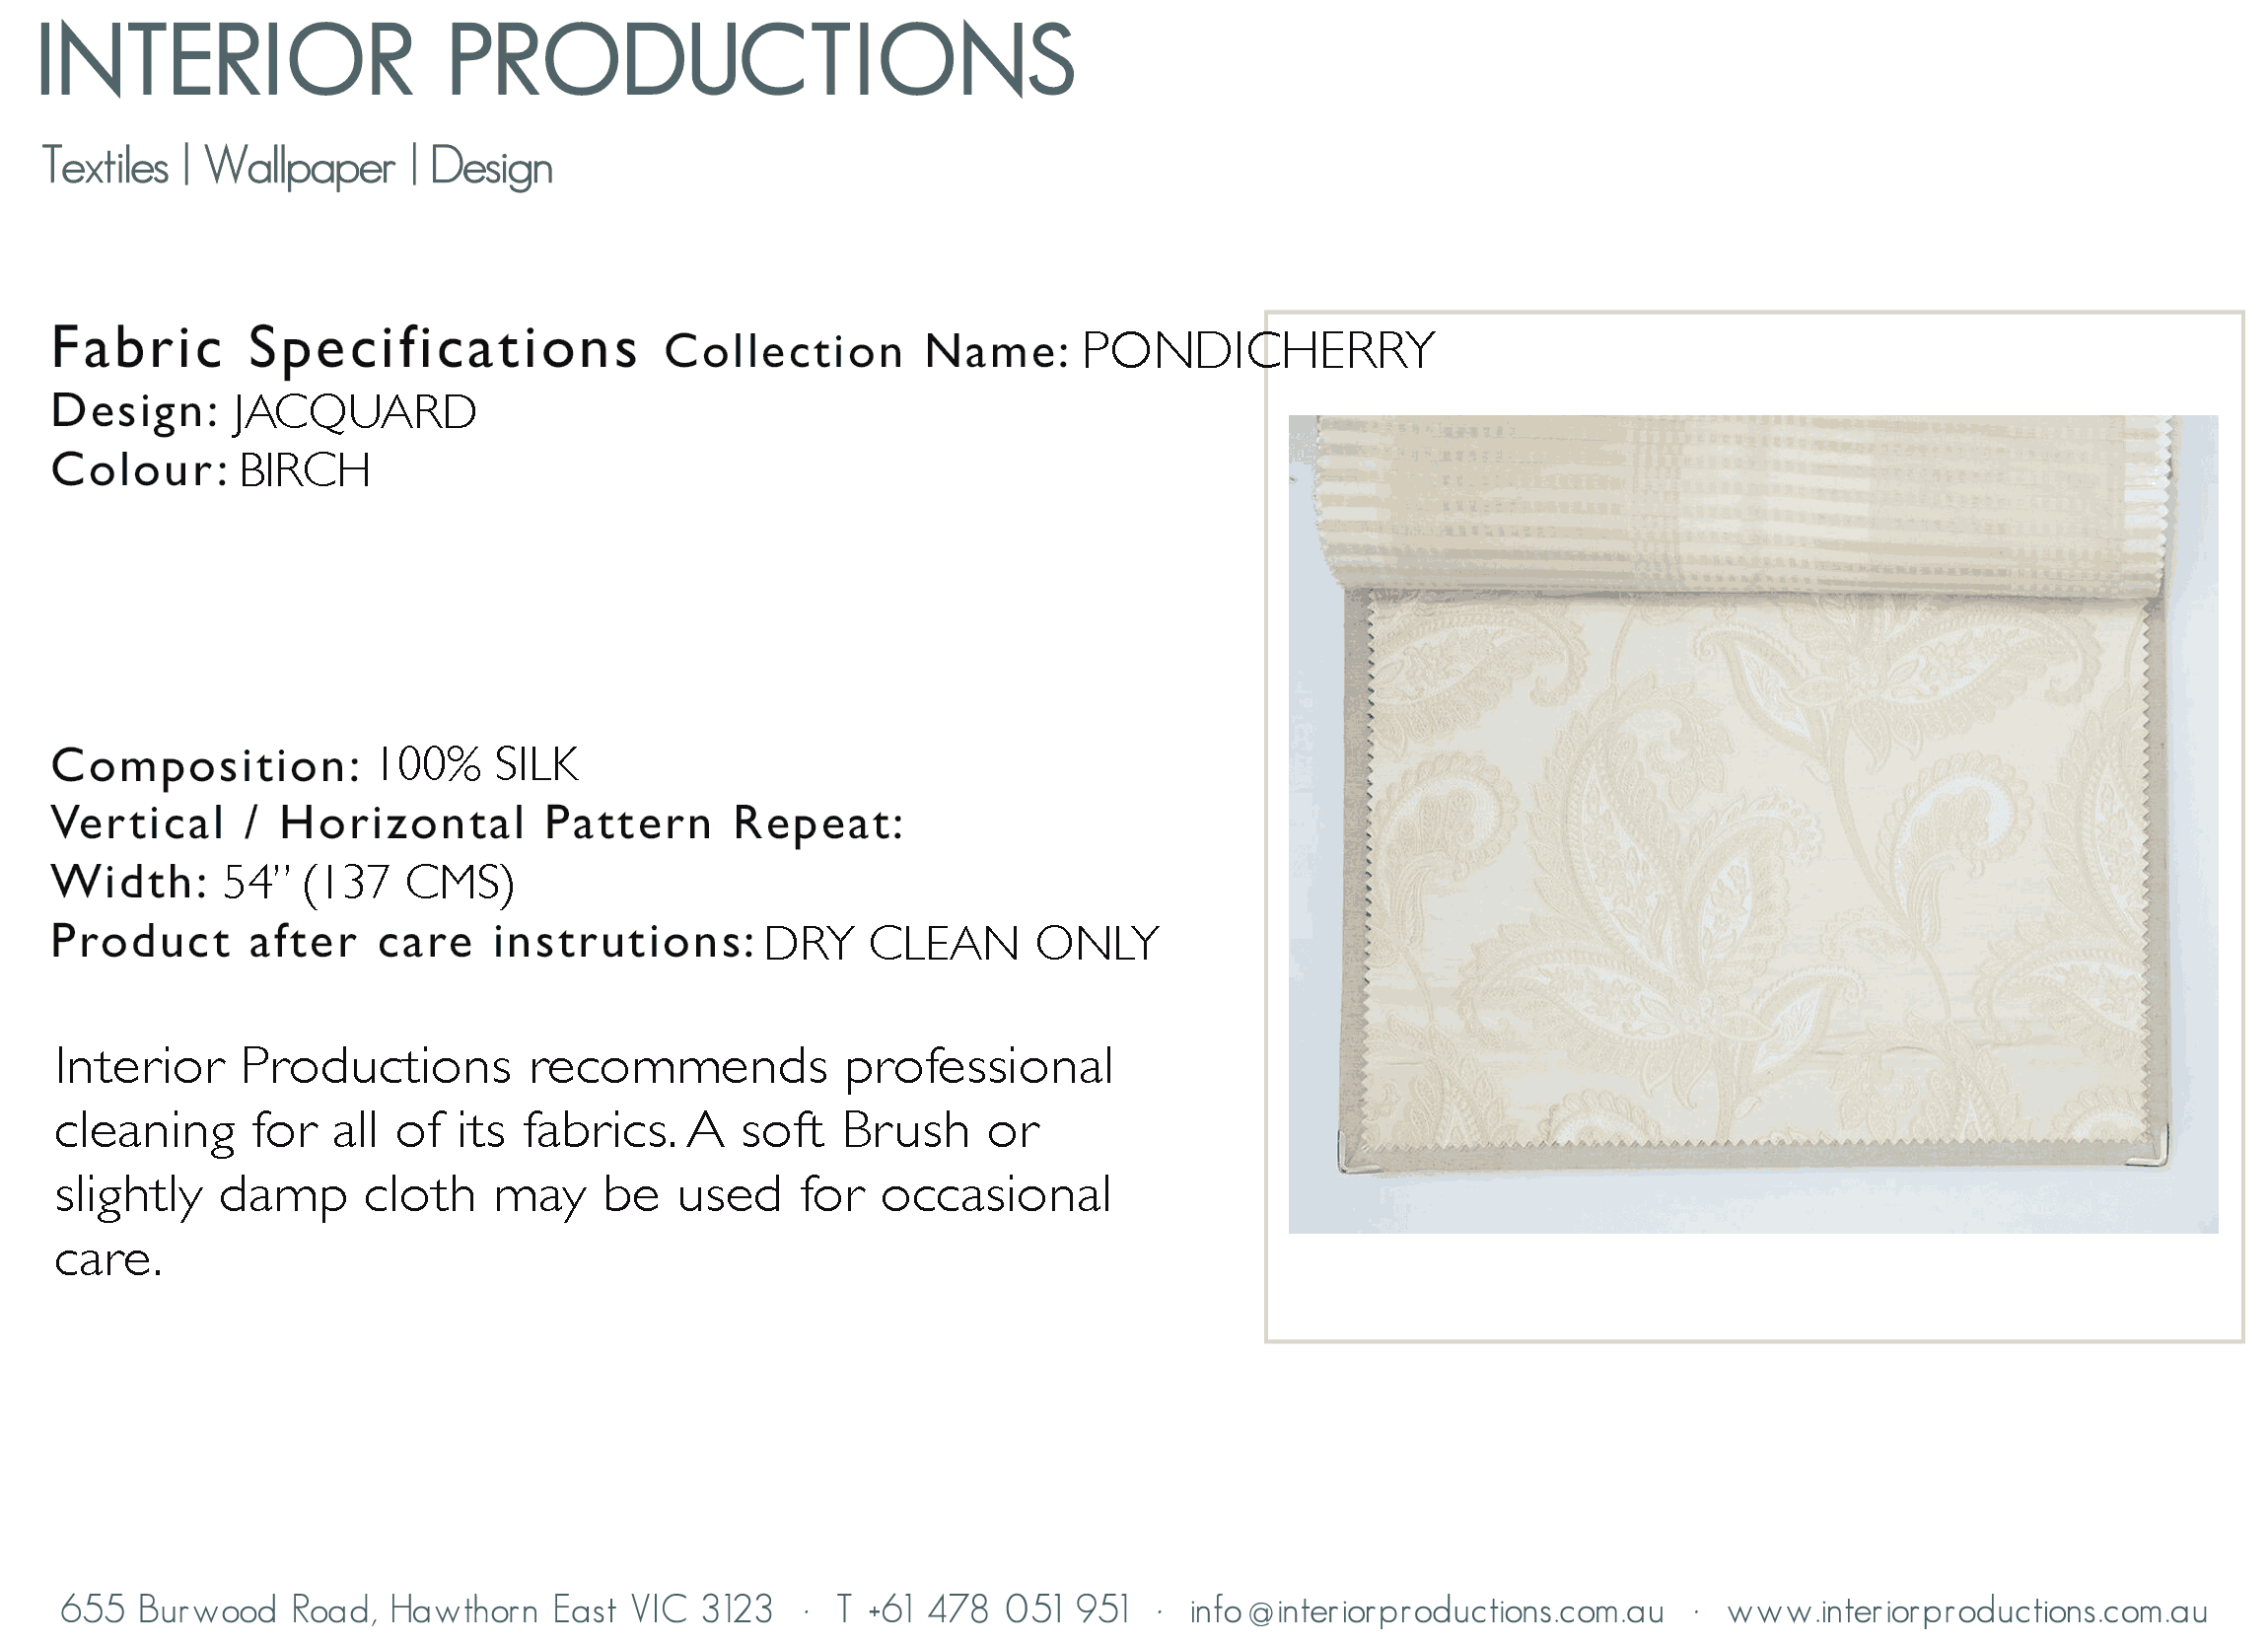 interior_productions_JACQUARD---BIRCH